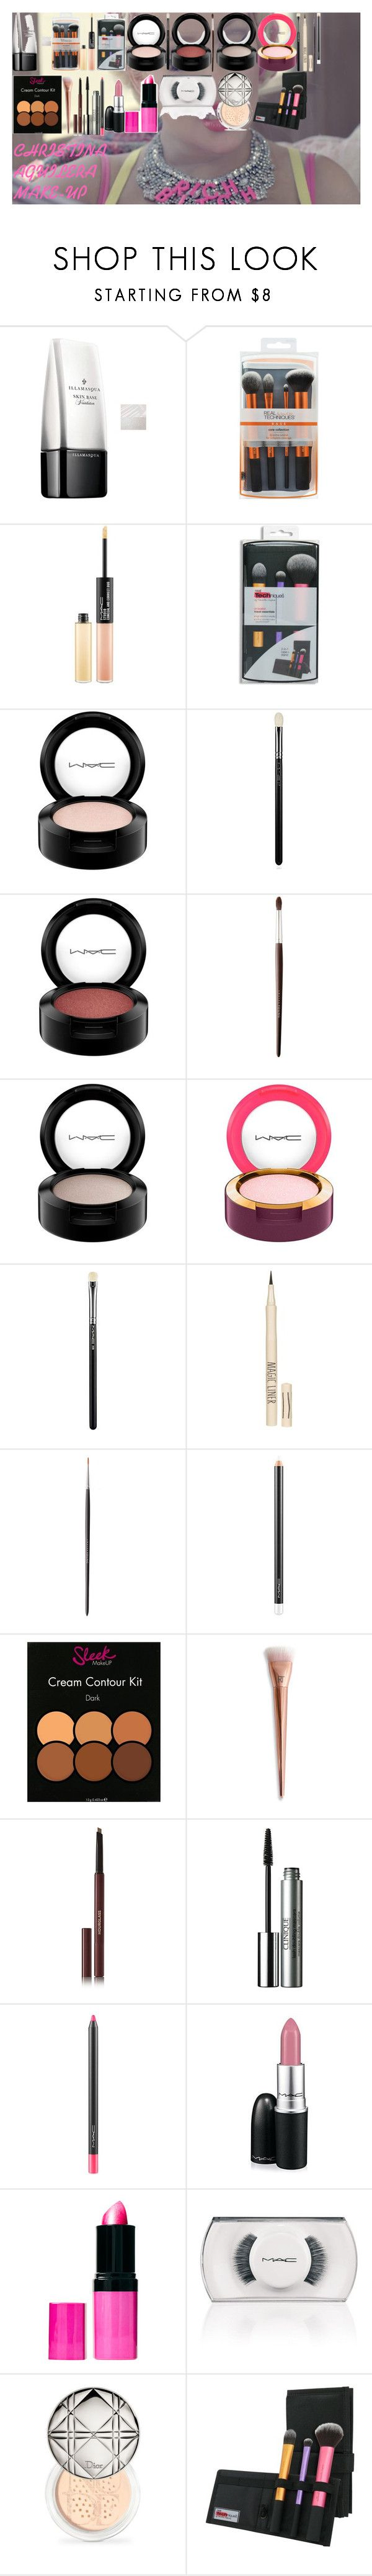 CHRISTINA AGUILERA MAKE-UP by oroartye-1 on Polyvore featuring beauty, Christian Dior, Illamasqua, Hourglass Cosmetics, MAC Cosmetics, Louise Young Cosmetics, Clinique, Topshop and Barry M